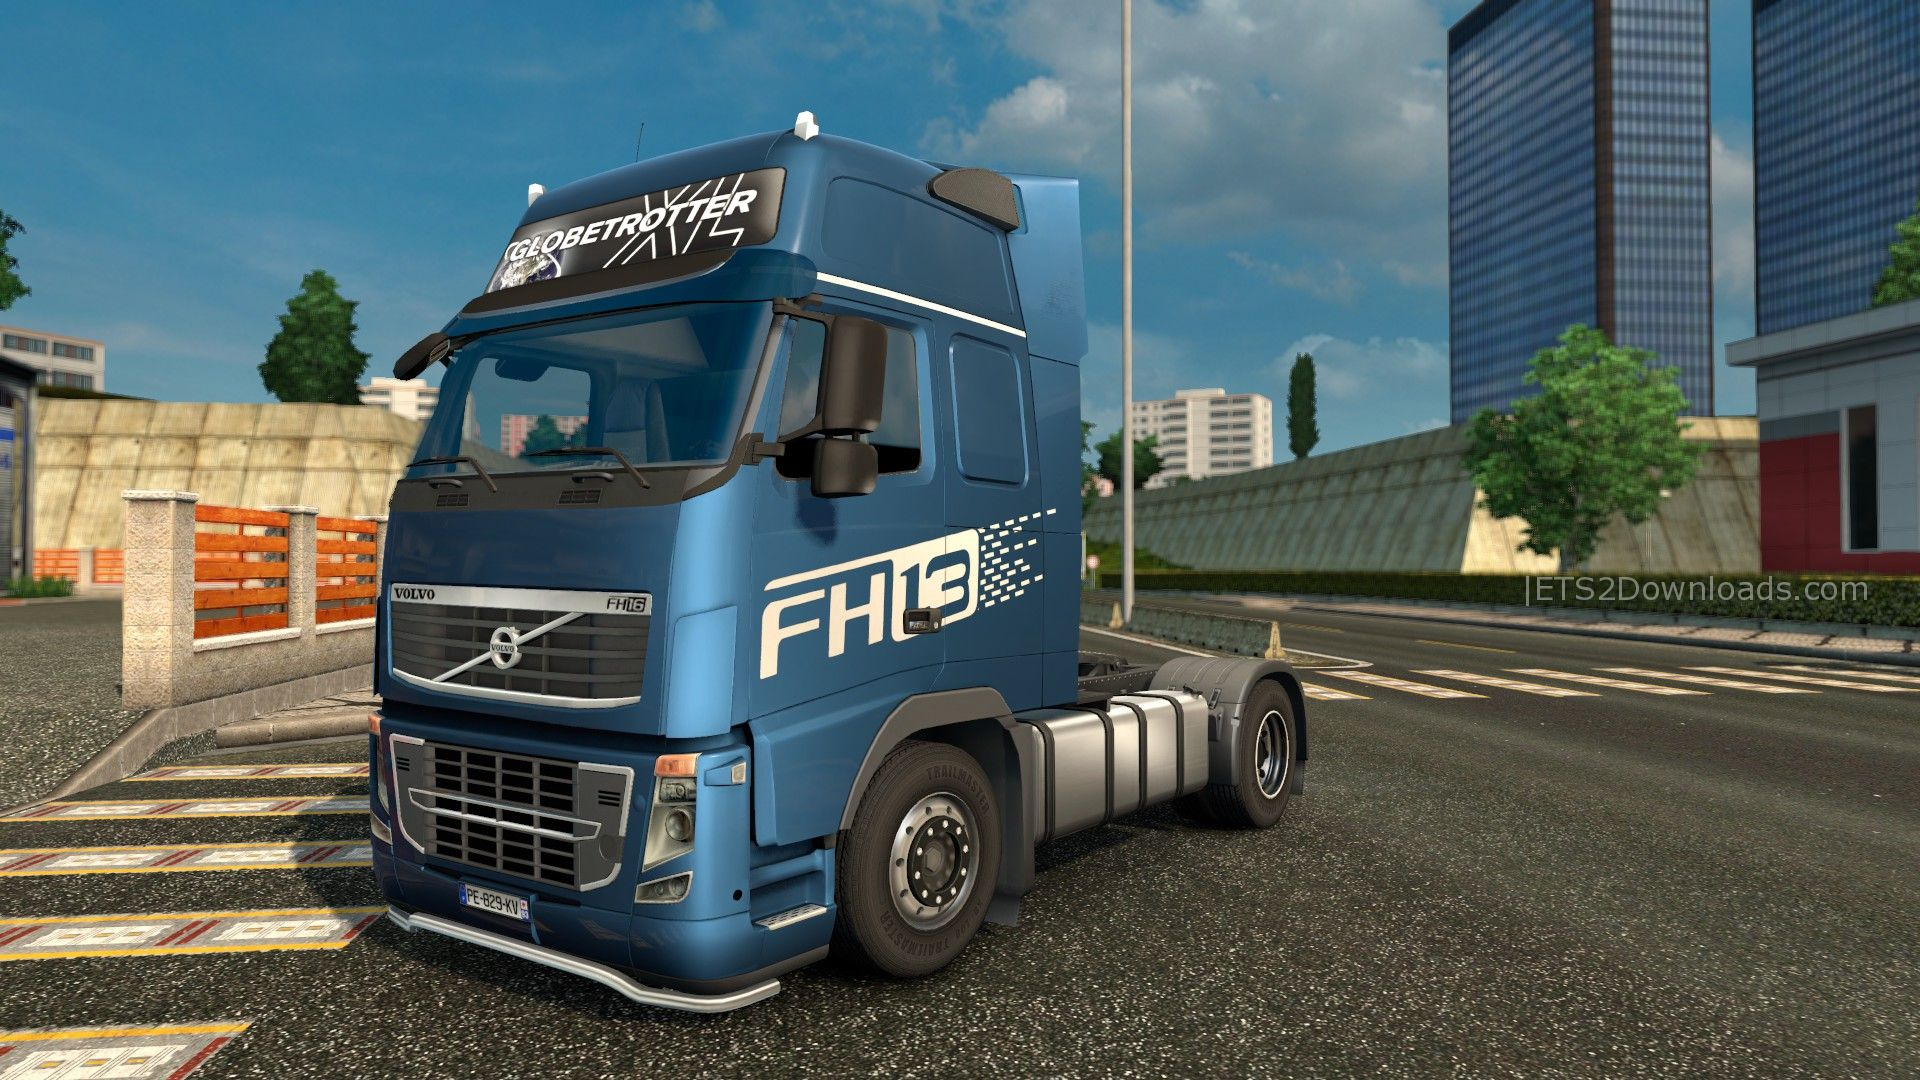 fh13-and-fh16-skin-for-volvo-fh16-classic-1